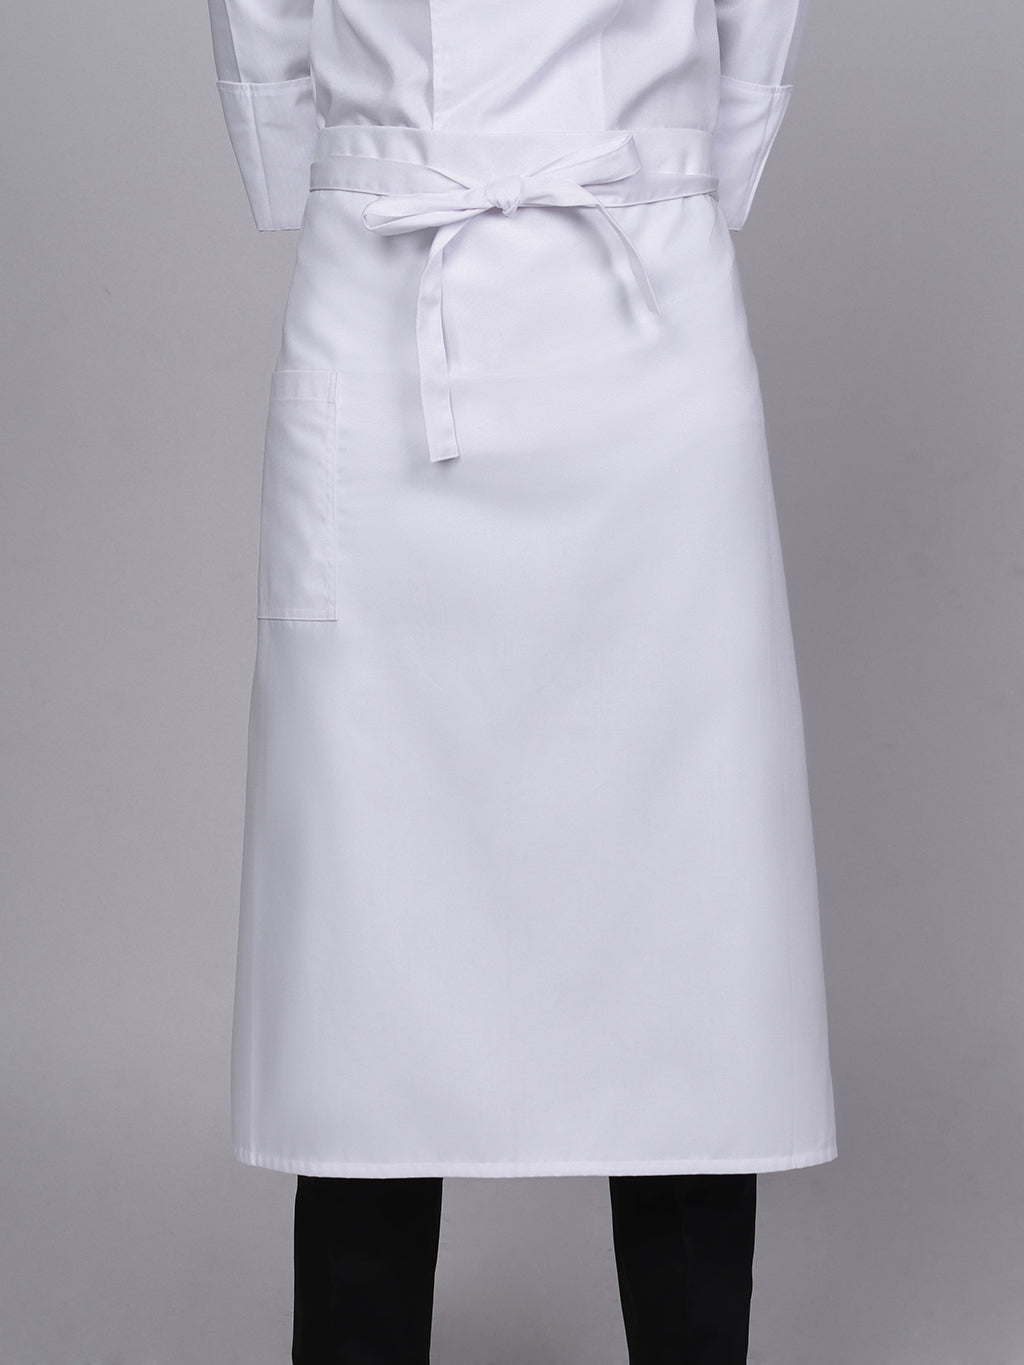 "White Chef Apron 31"" - Green Chef Wear"